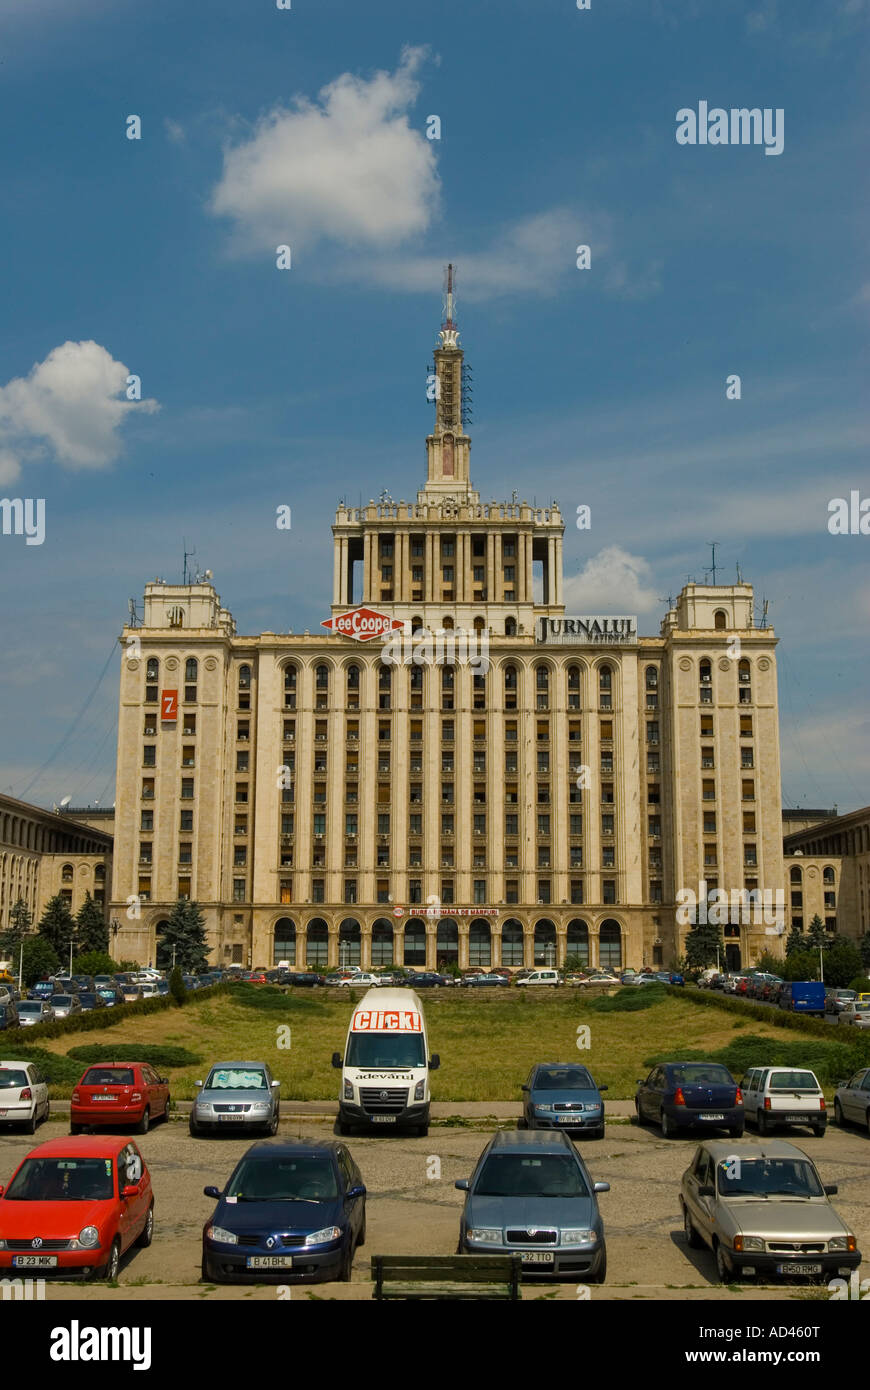 Press center, Bucharest, Romania - Stock Image